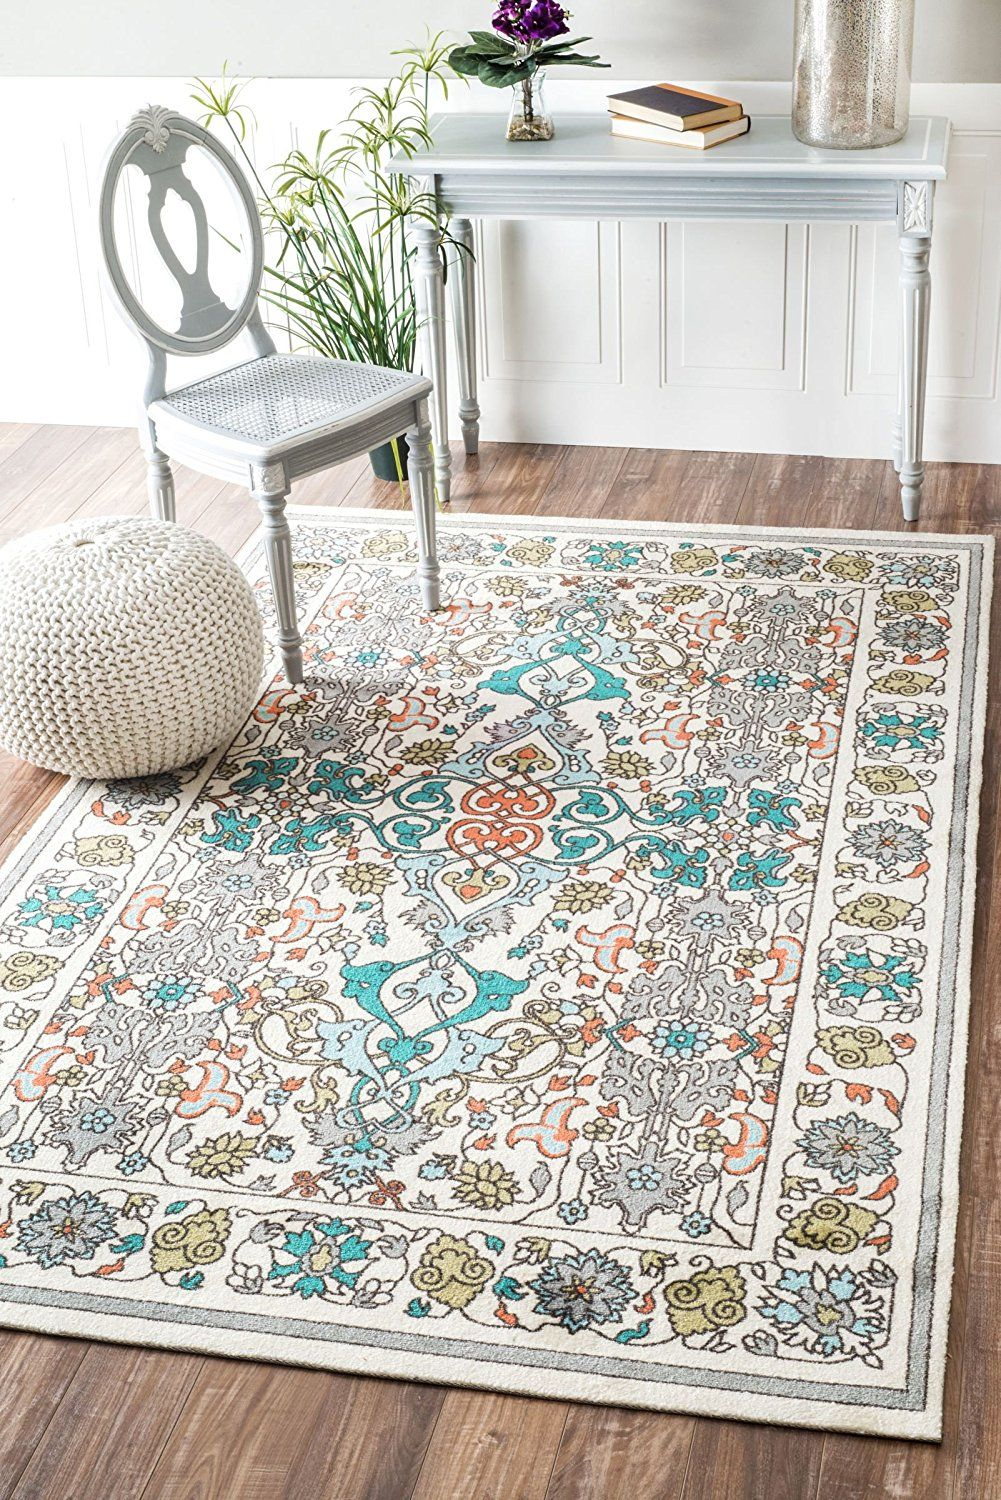 Nuloom 9' x 12' Floral Rug. Affiliate Link. Inexpensive rugs, Rugs, Area Rugs, Rugs for Sale, Cheap Rugs, Rugs Online, Cheap Area Rugs, Floor Rugs, Discount Rugs, Modern Rugs, Large Rugs, Discount Area Rugs, Rug Sale, Throw Rugs, Kitchen Rugs, Round Area Rugs, Carpets and Rugs, Contemporary Rugs, Carpet Runners, Farmhouse Rugs, Nautical Rugs, Washable Rugs, Natural Rugs, Shag Rugs, Fur Rugs, Fluffy Rugs, Extra Large Rugs, Inexpensive Area Rug Ideas, Round Rugs, Circular Rugs, Blue Rug, Teal…